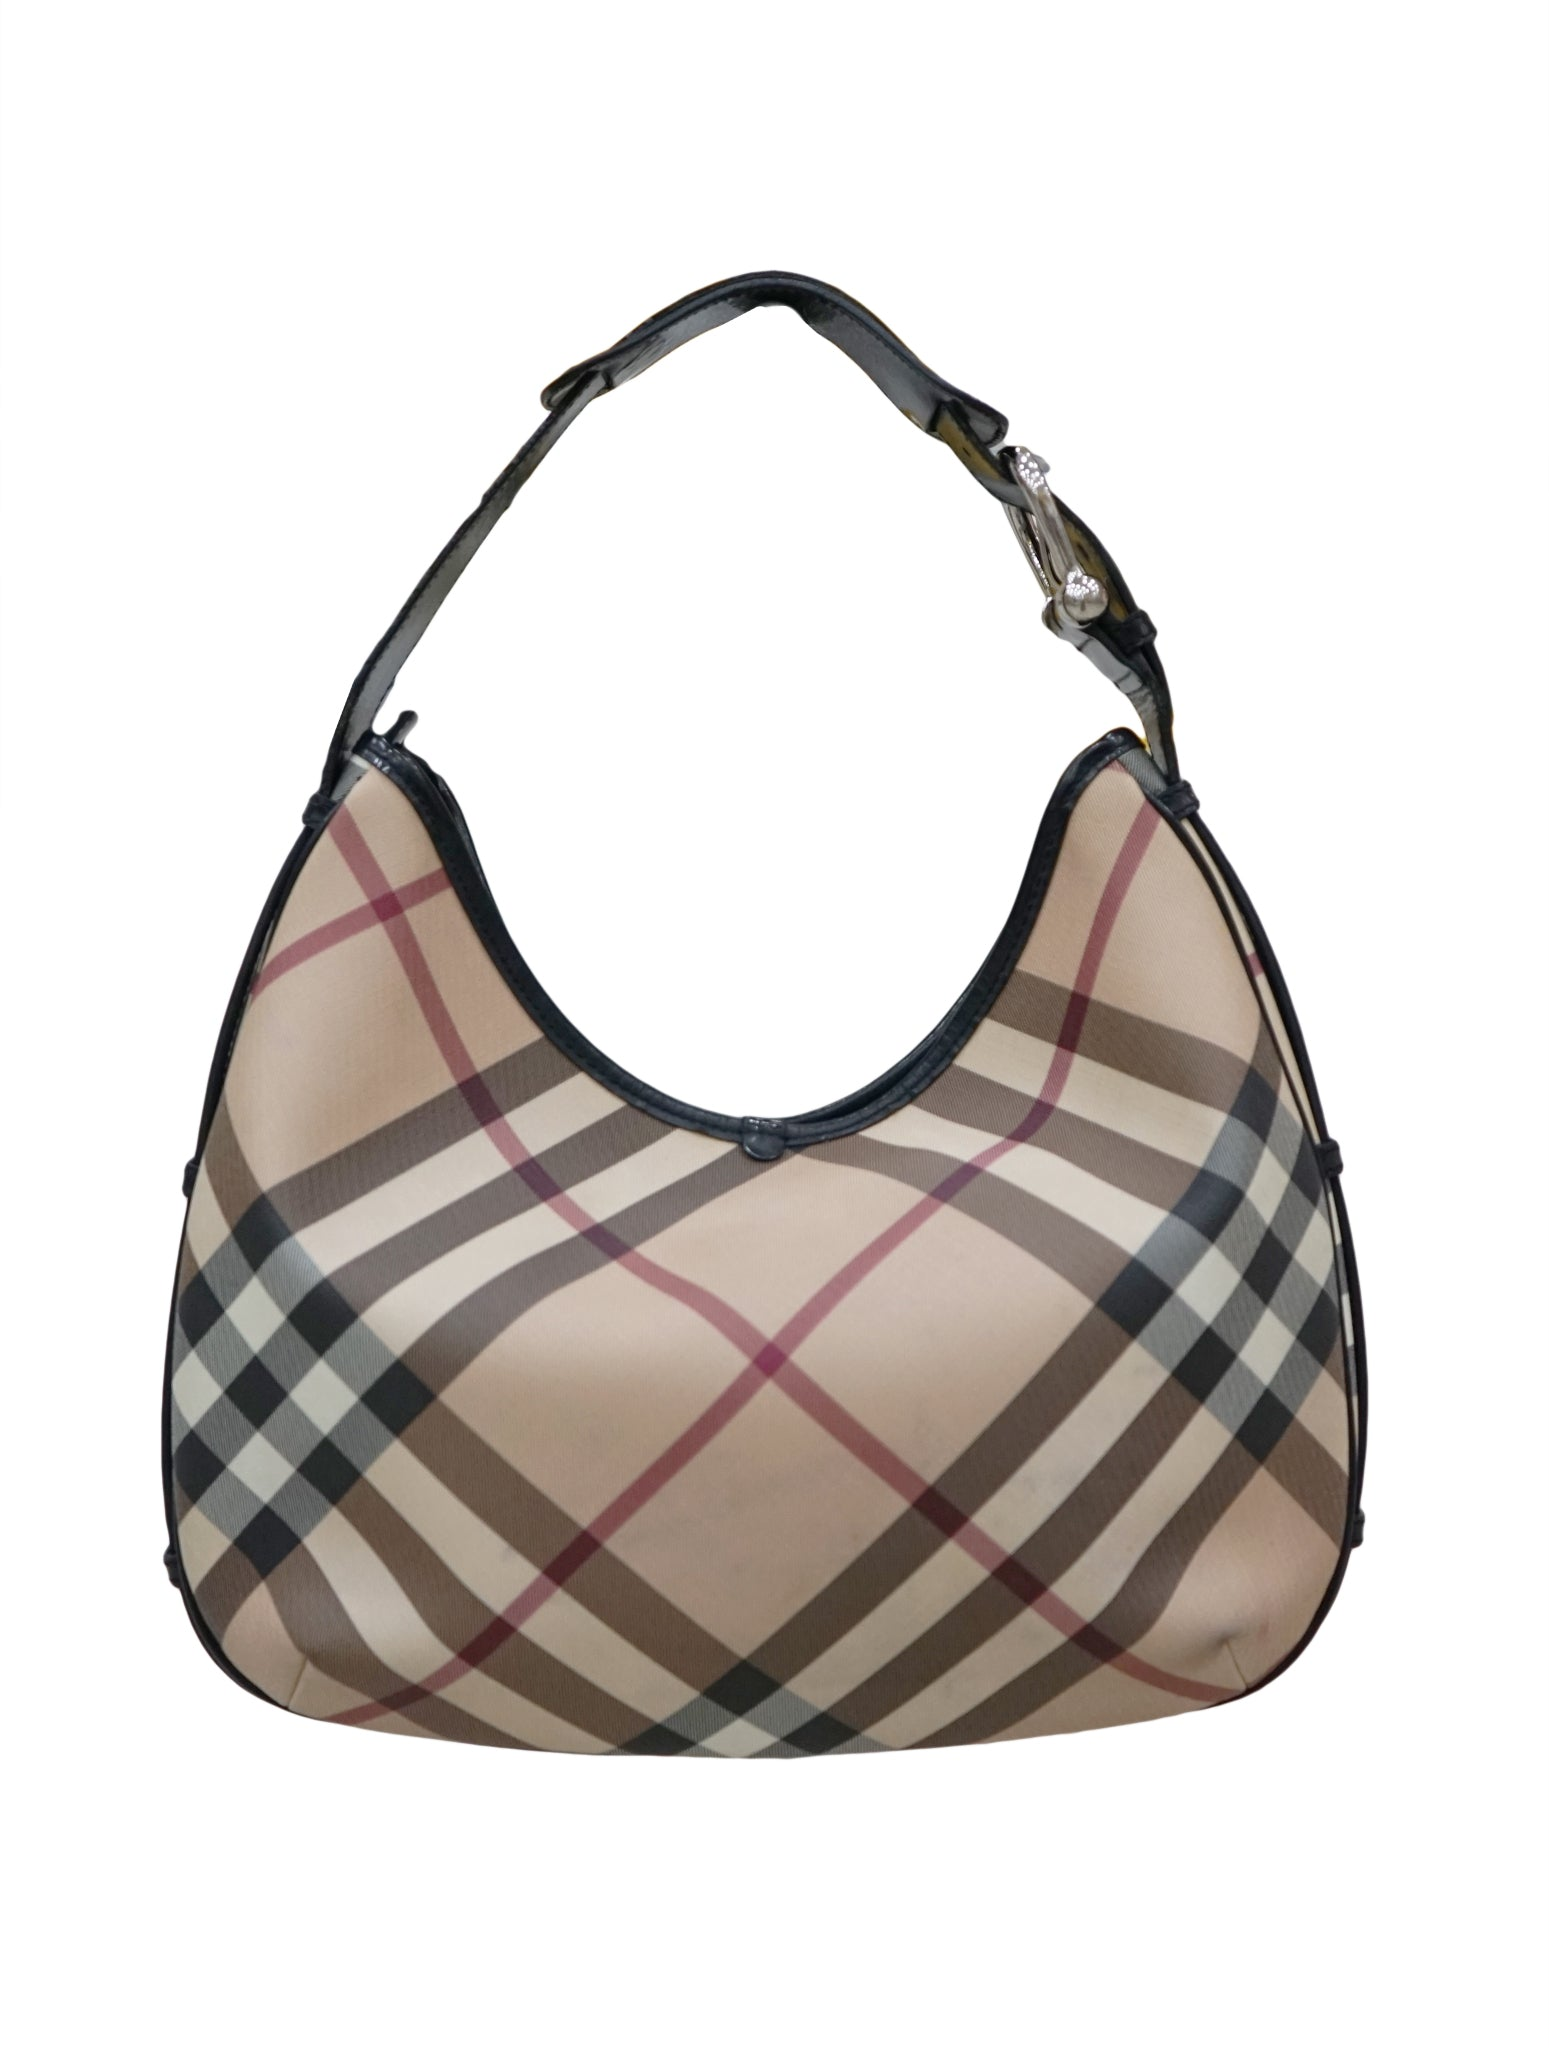 NOVA CHECK COATED CANVAS MEDIUM HOBO BAG